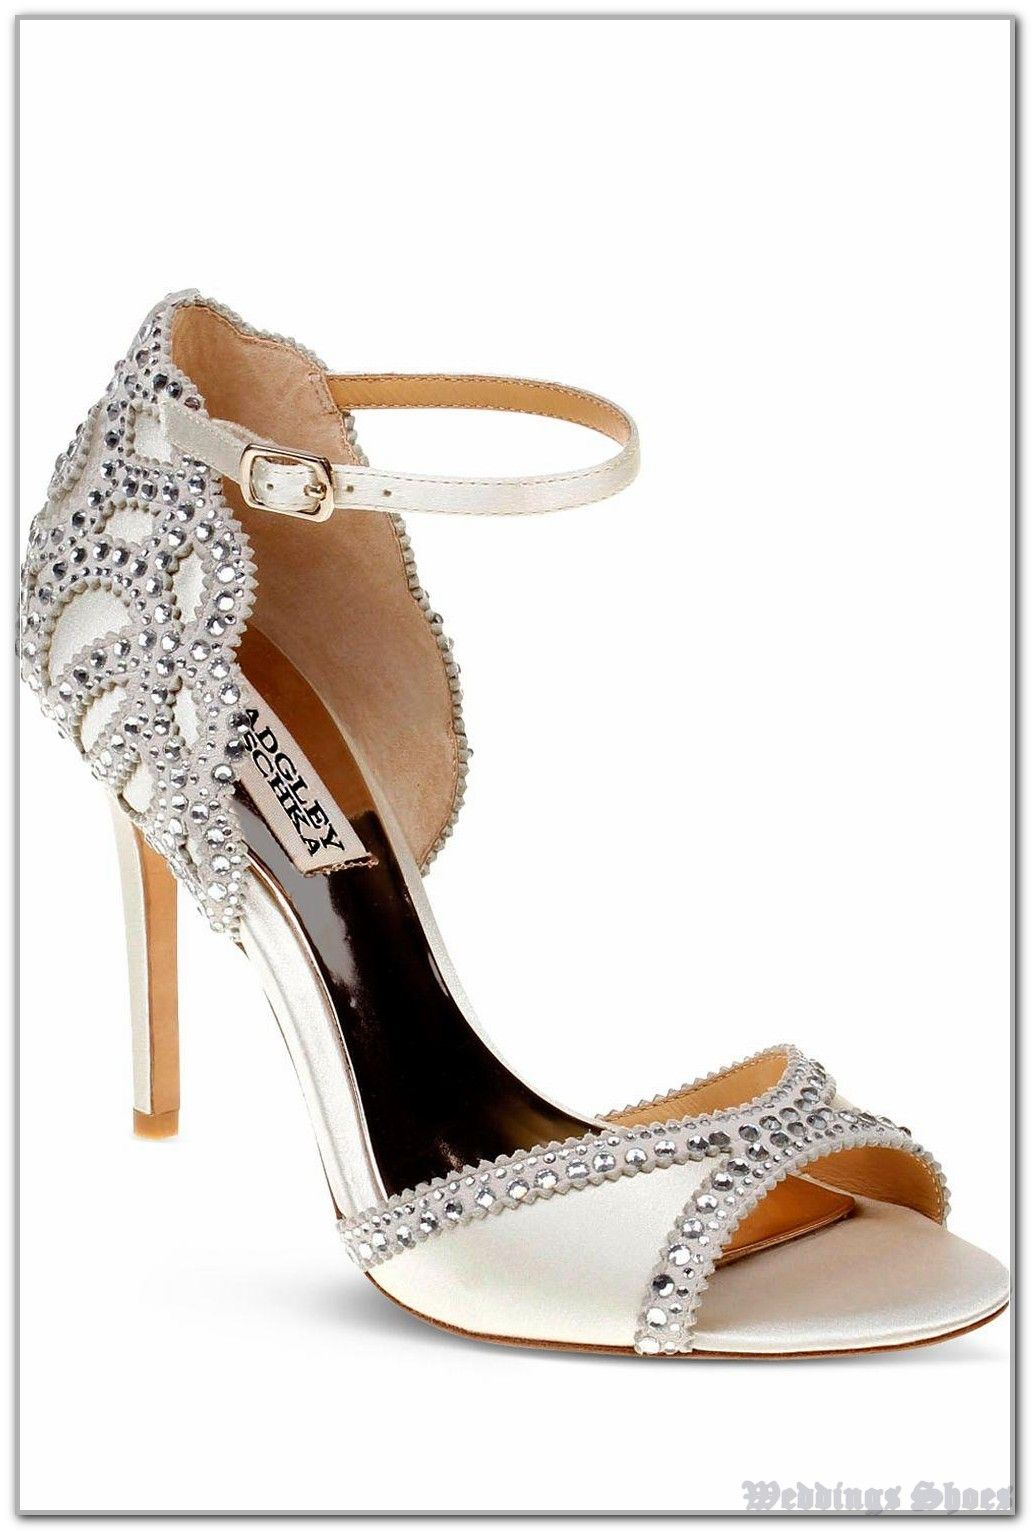 5 Ways Of Wedding Shoes That Can Drive You Bankrupt – Fast!